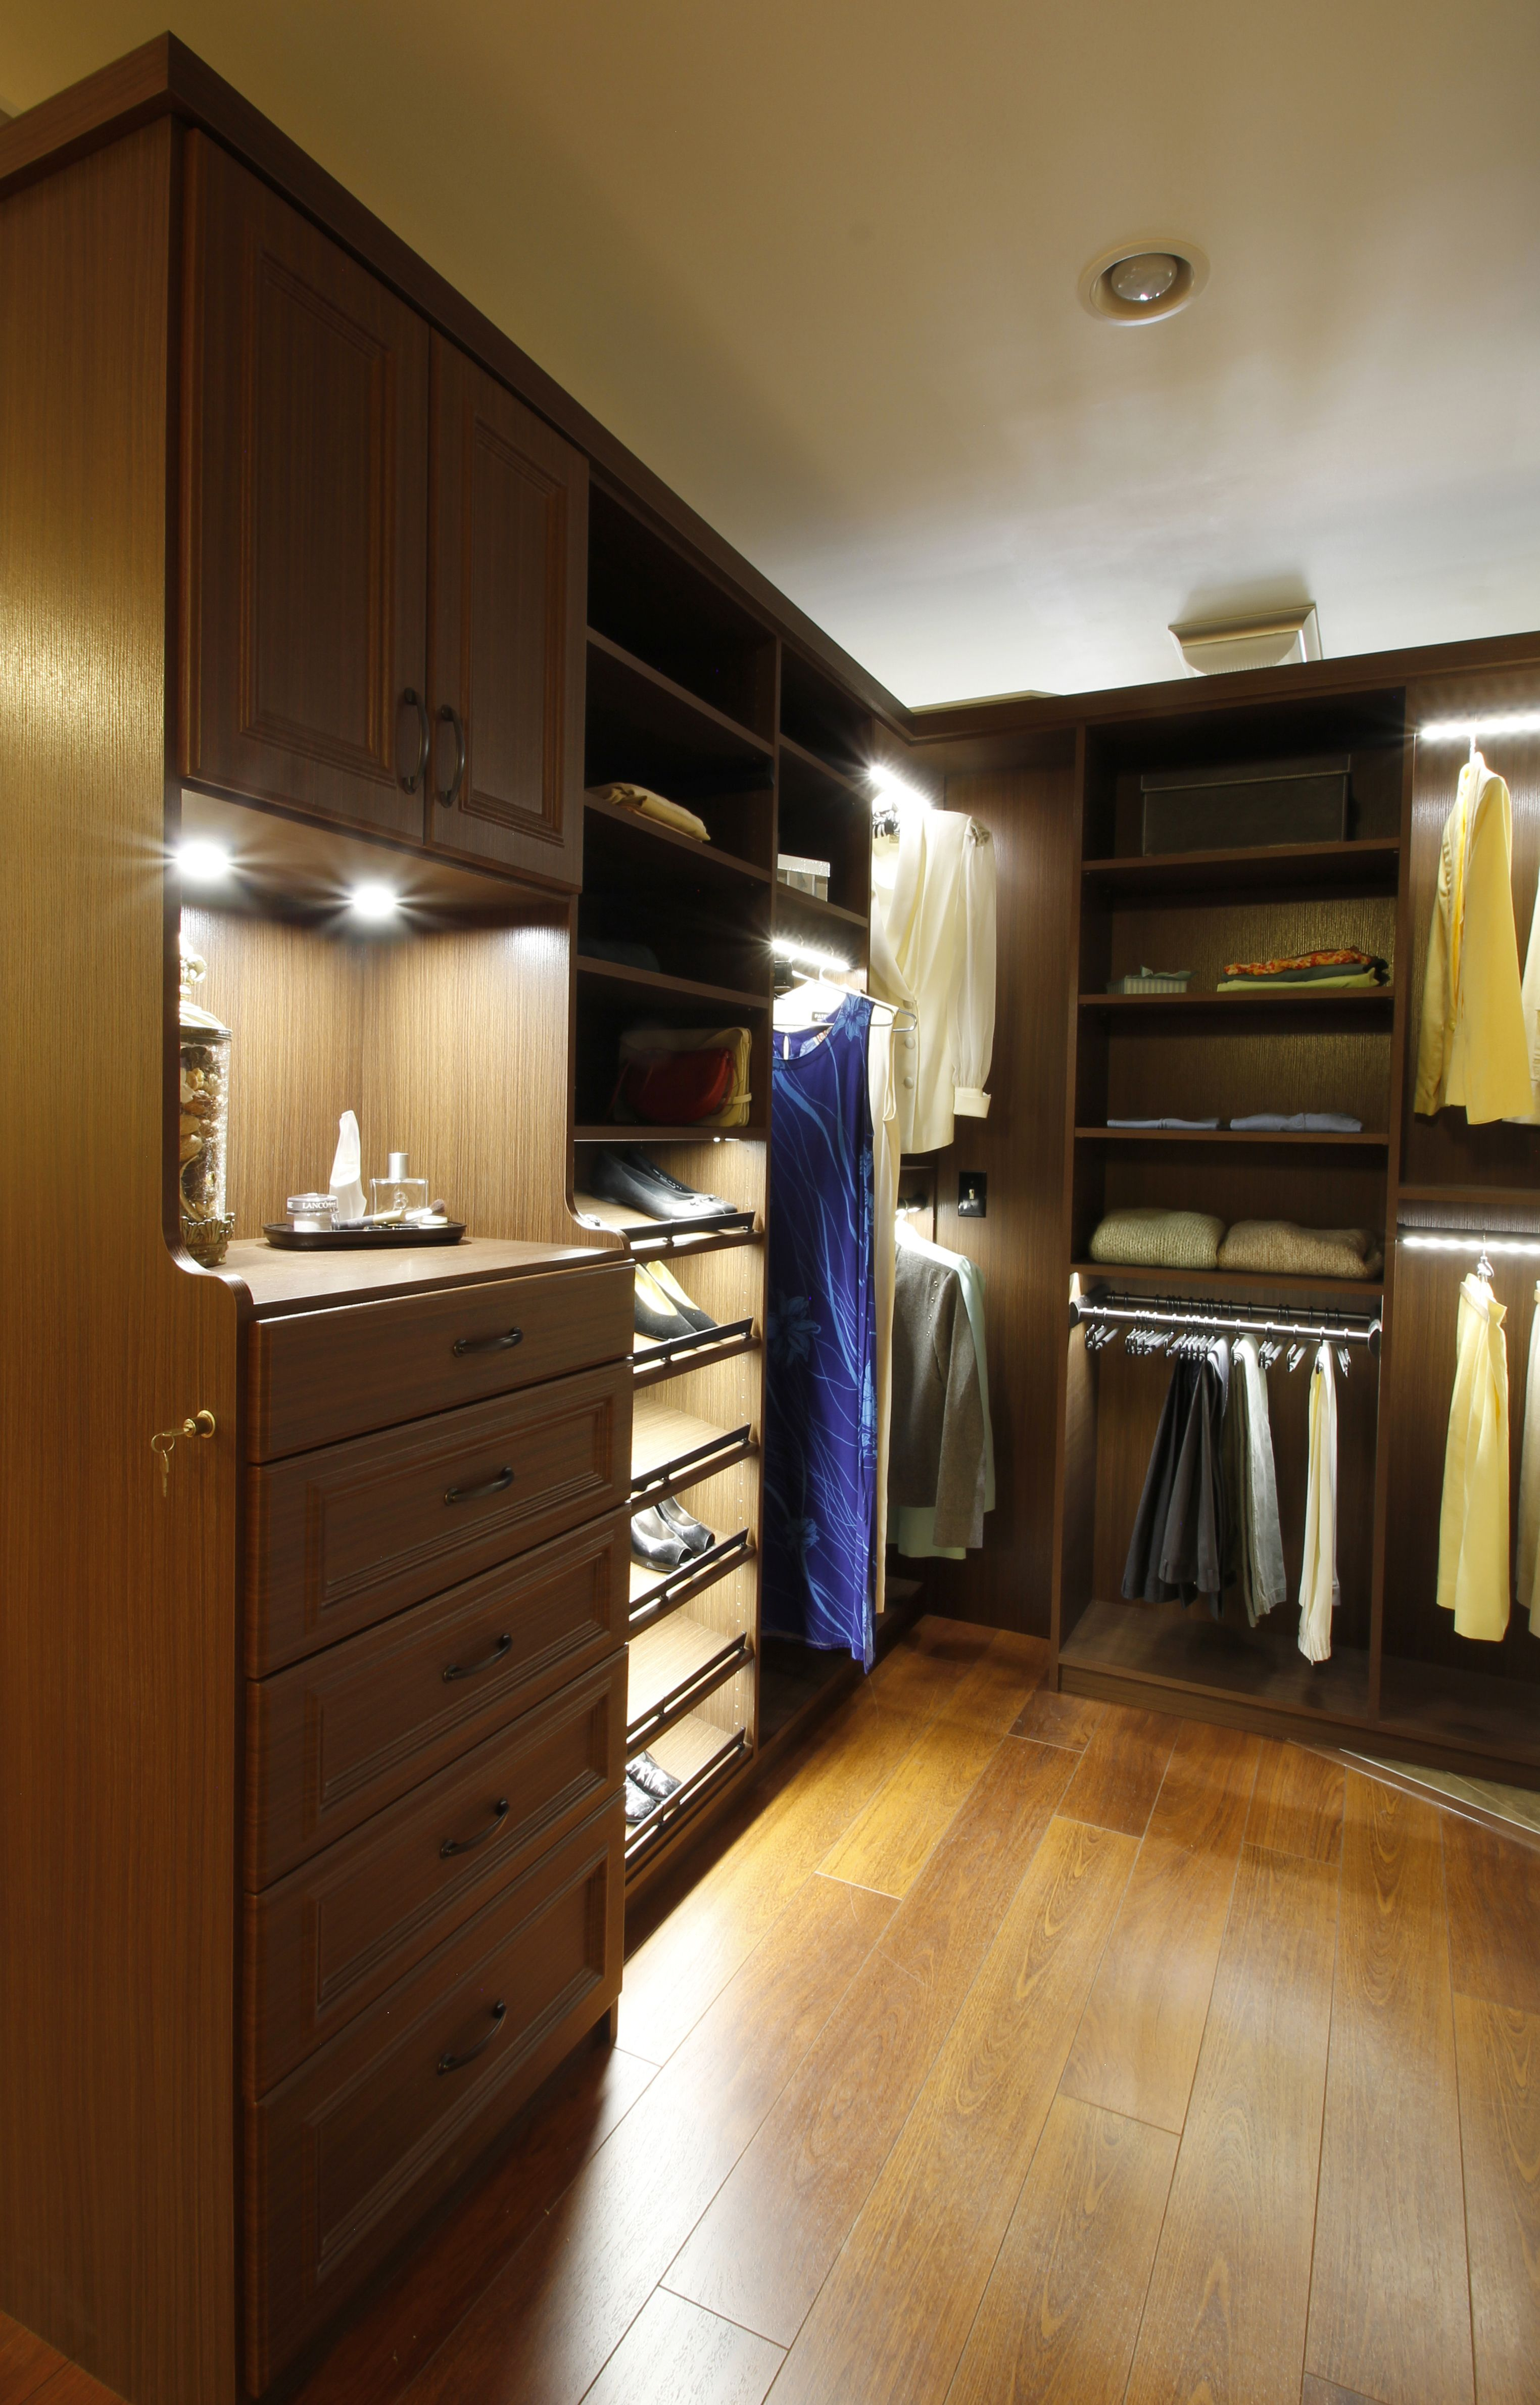 Led Lighting In The Closet Lighted Closet Rods Display Lighting